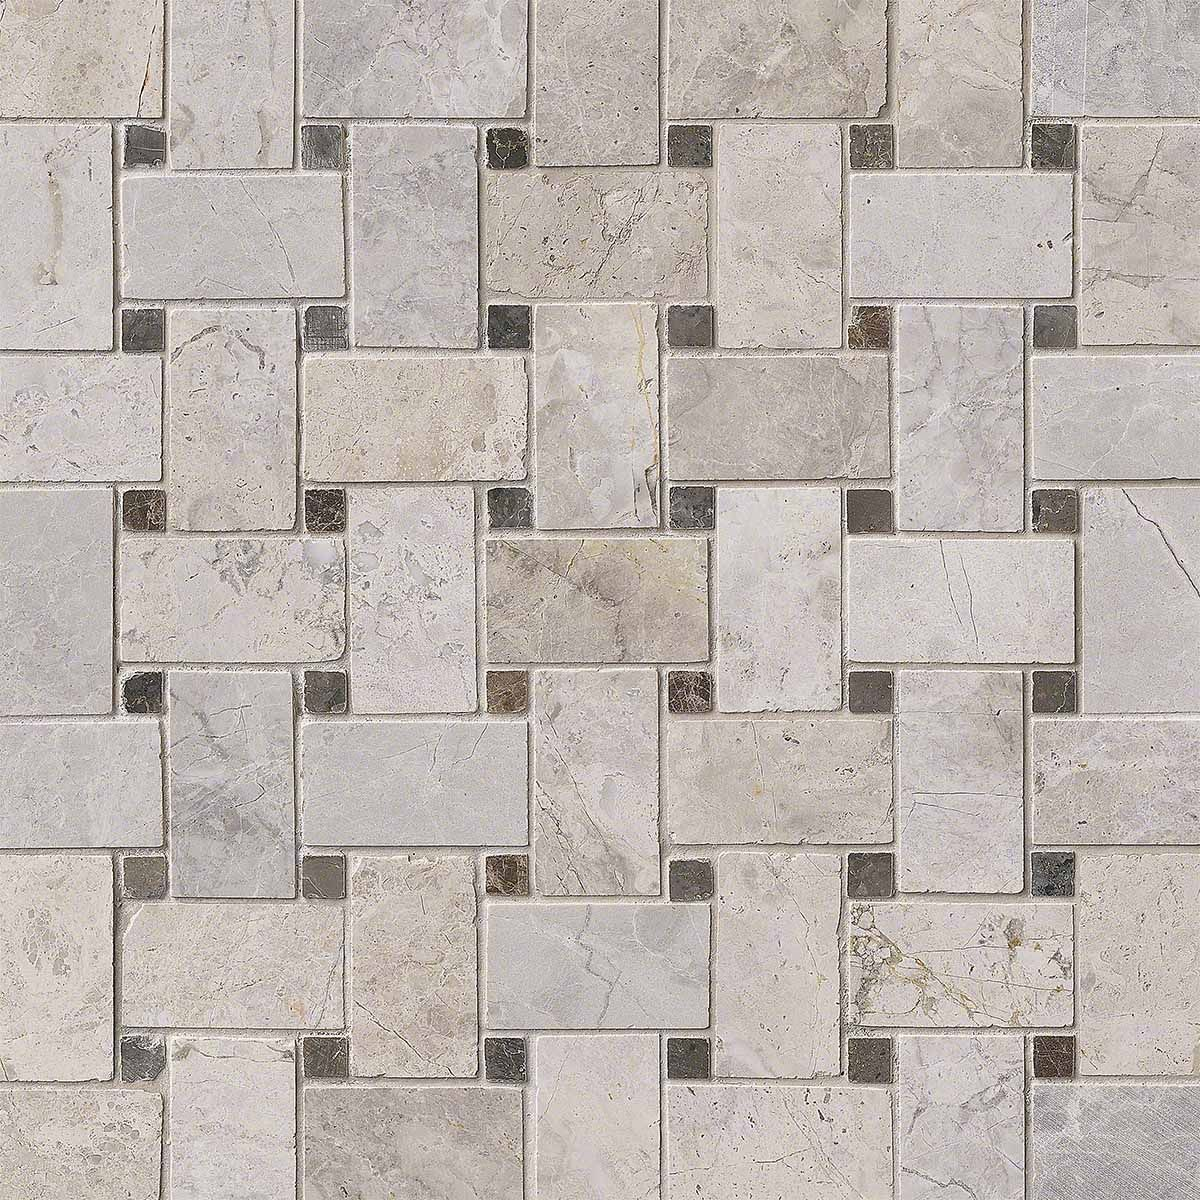 Tundra Gray Basketweave Pattern Polished Marble Backsplash Wall Tile on gray contemporary kitchen, gray kitchen wall ideas, gray and white modern kitchen, gray kitchen glass backsplash, gray stone backsplash, gray kitchen decorating ideas, gray kitchen cabinets with backsplash, gray painting ideas, gray kitchen remodel, gray kitchen living room ideas, copper backsplashes for kitchens ideas, small kitchen ideas, gray beadboard backsplash, gray kitchen window treatments, gray galley kitchen, gray family room ideas, gray and white backsplash, gray carpet ideas, gray cabinets ideas, gray pool ideas,